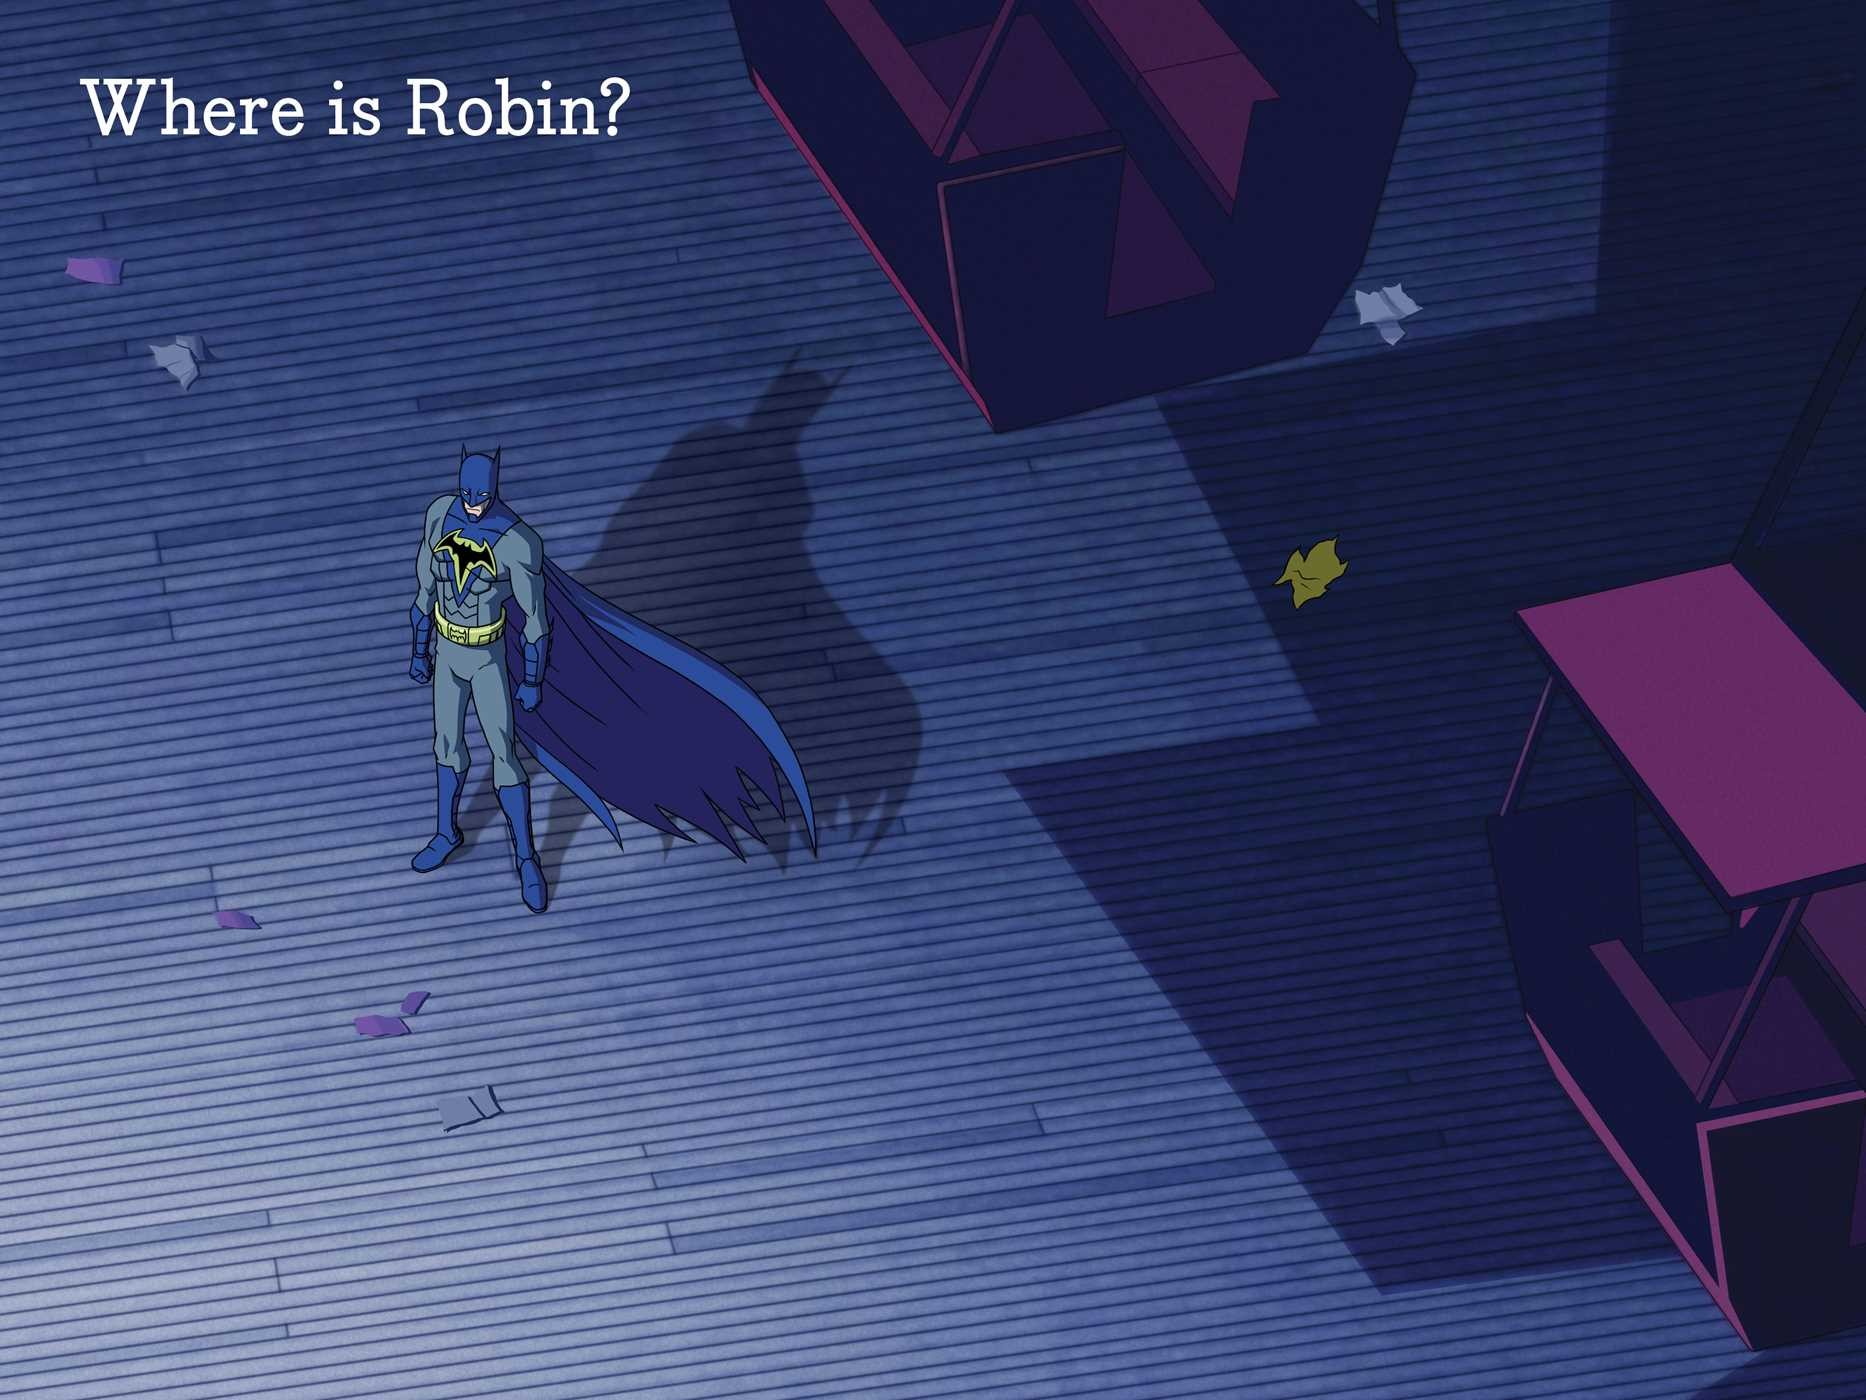 Where is robin 9781534425958.in01